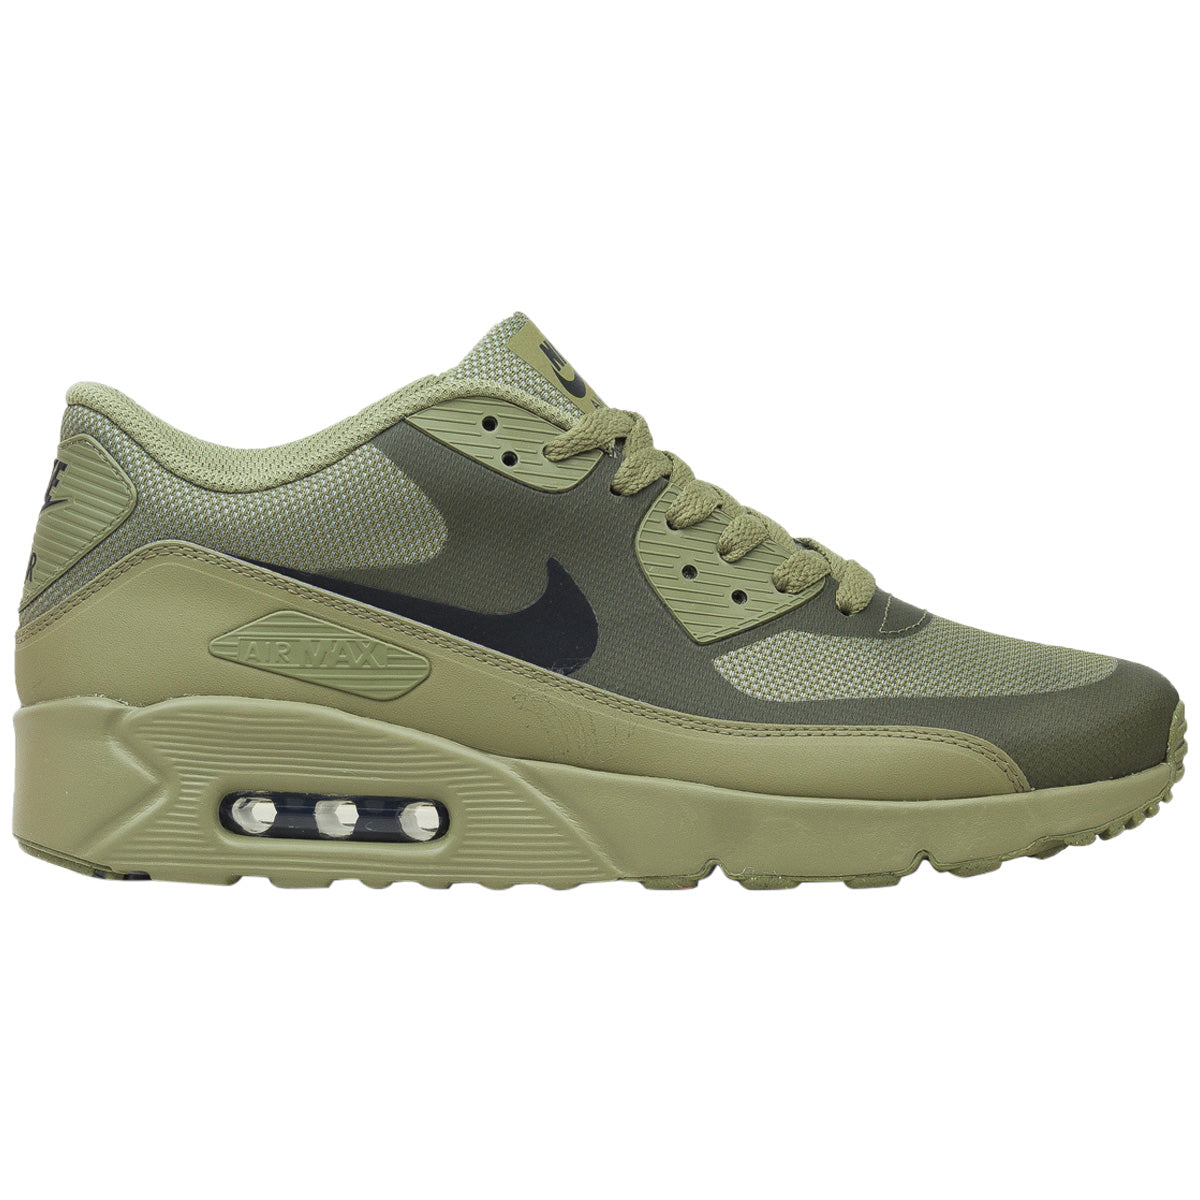 on sale ff067 78569 Nike Air Max 90 Ultra 2.0 Essential Mens Style   875695-201 · NIKE   Athletic  Shoes   Sneakers